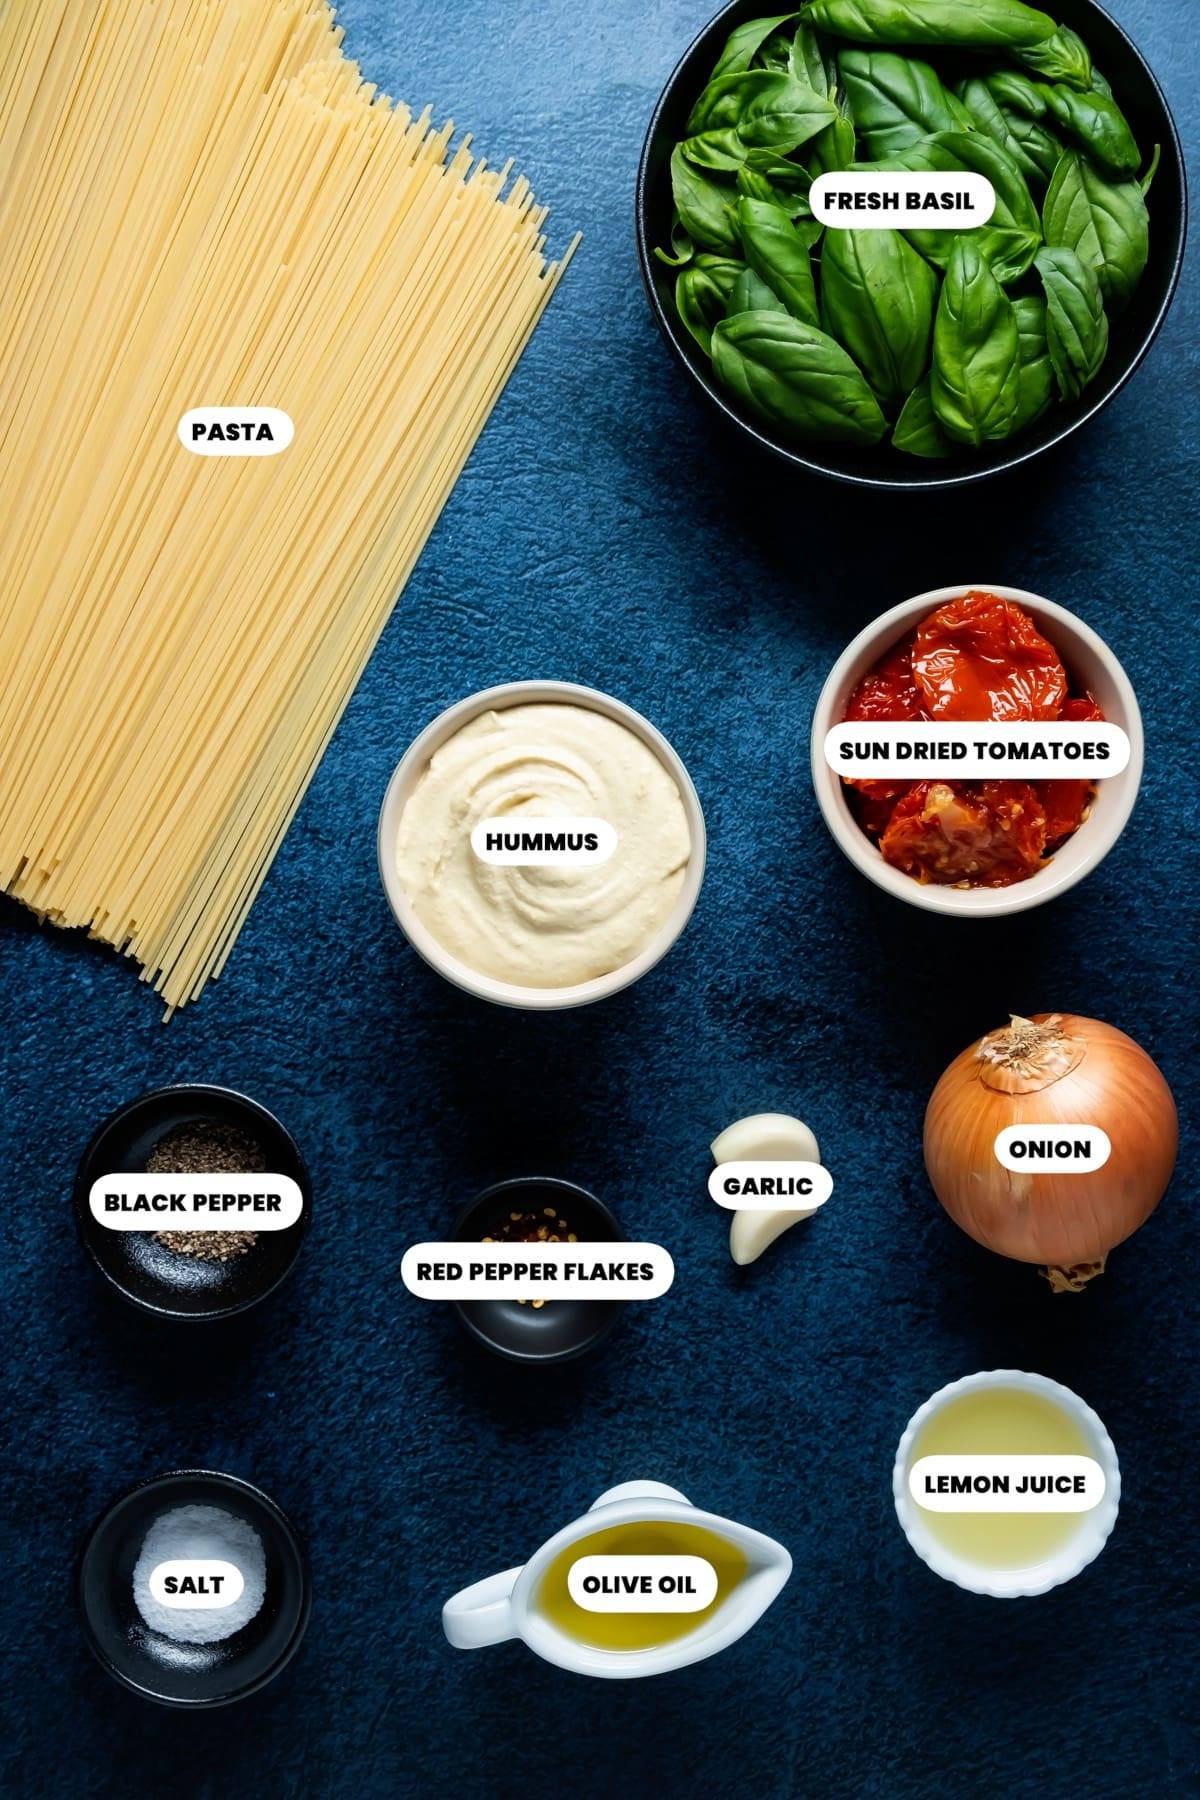 Photo of the ingredients needed to make hummus pasta.